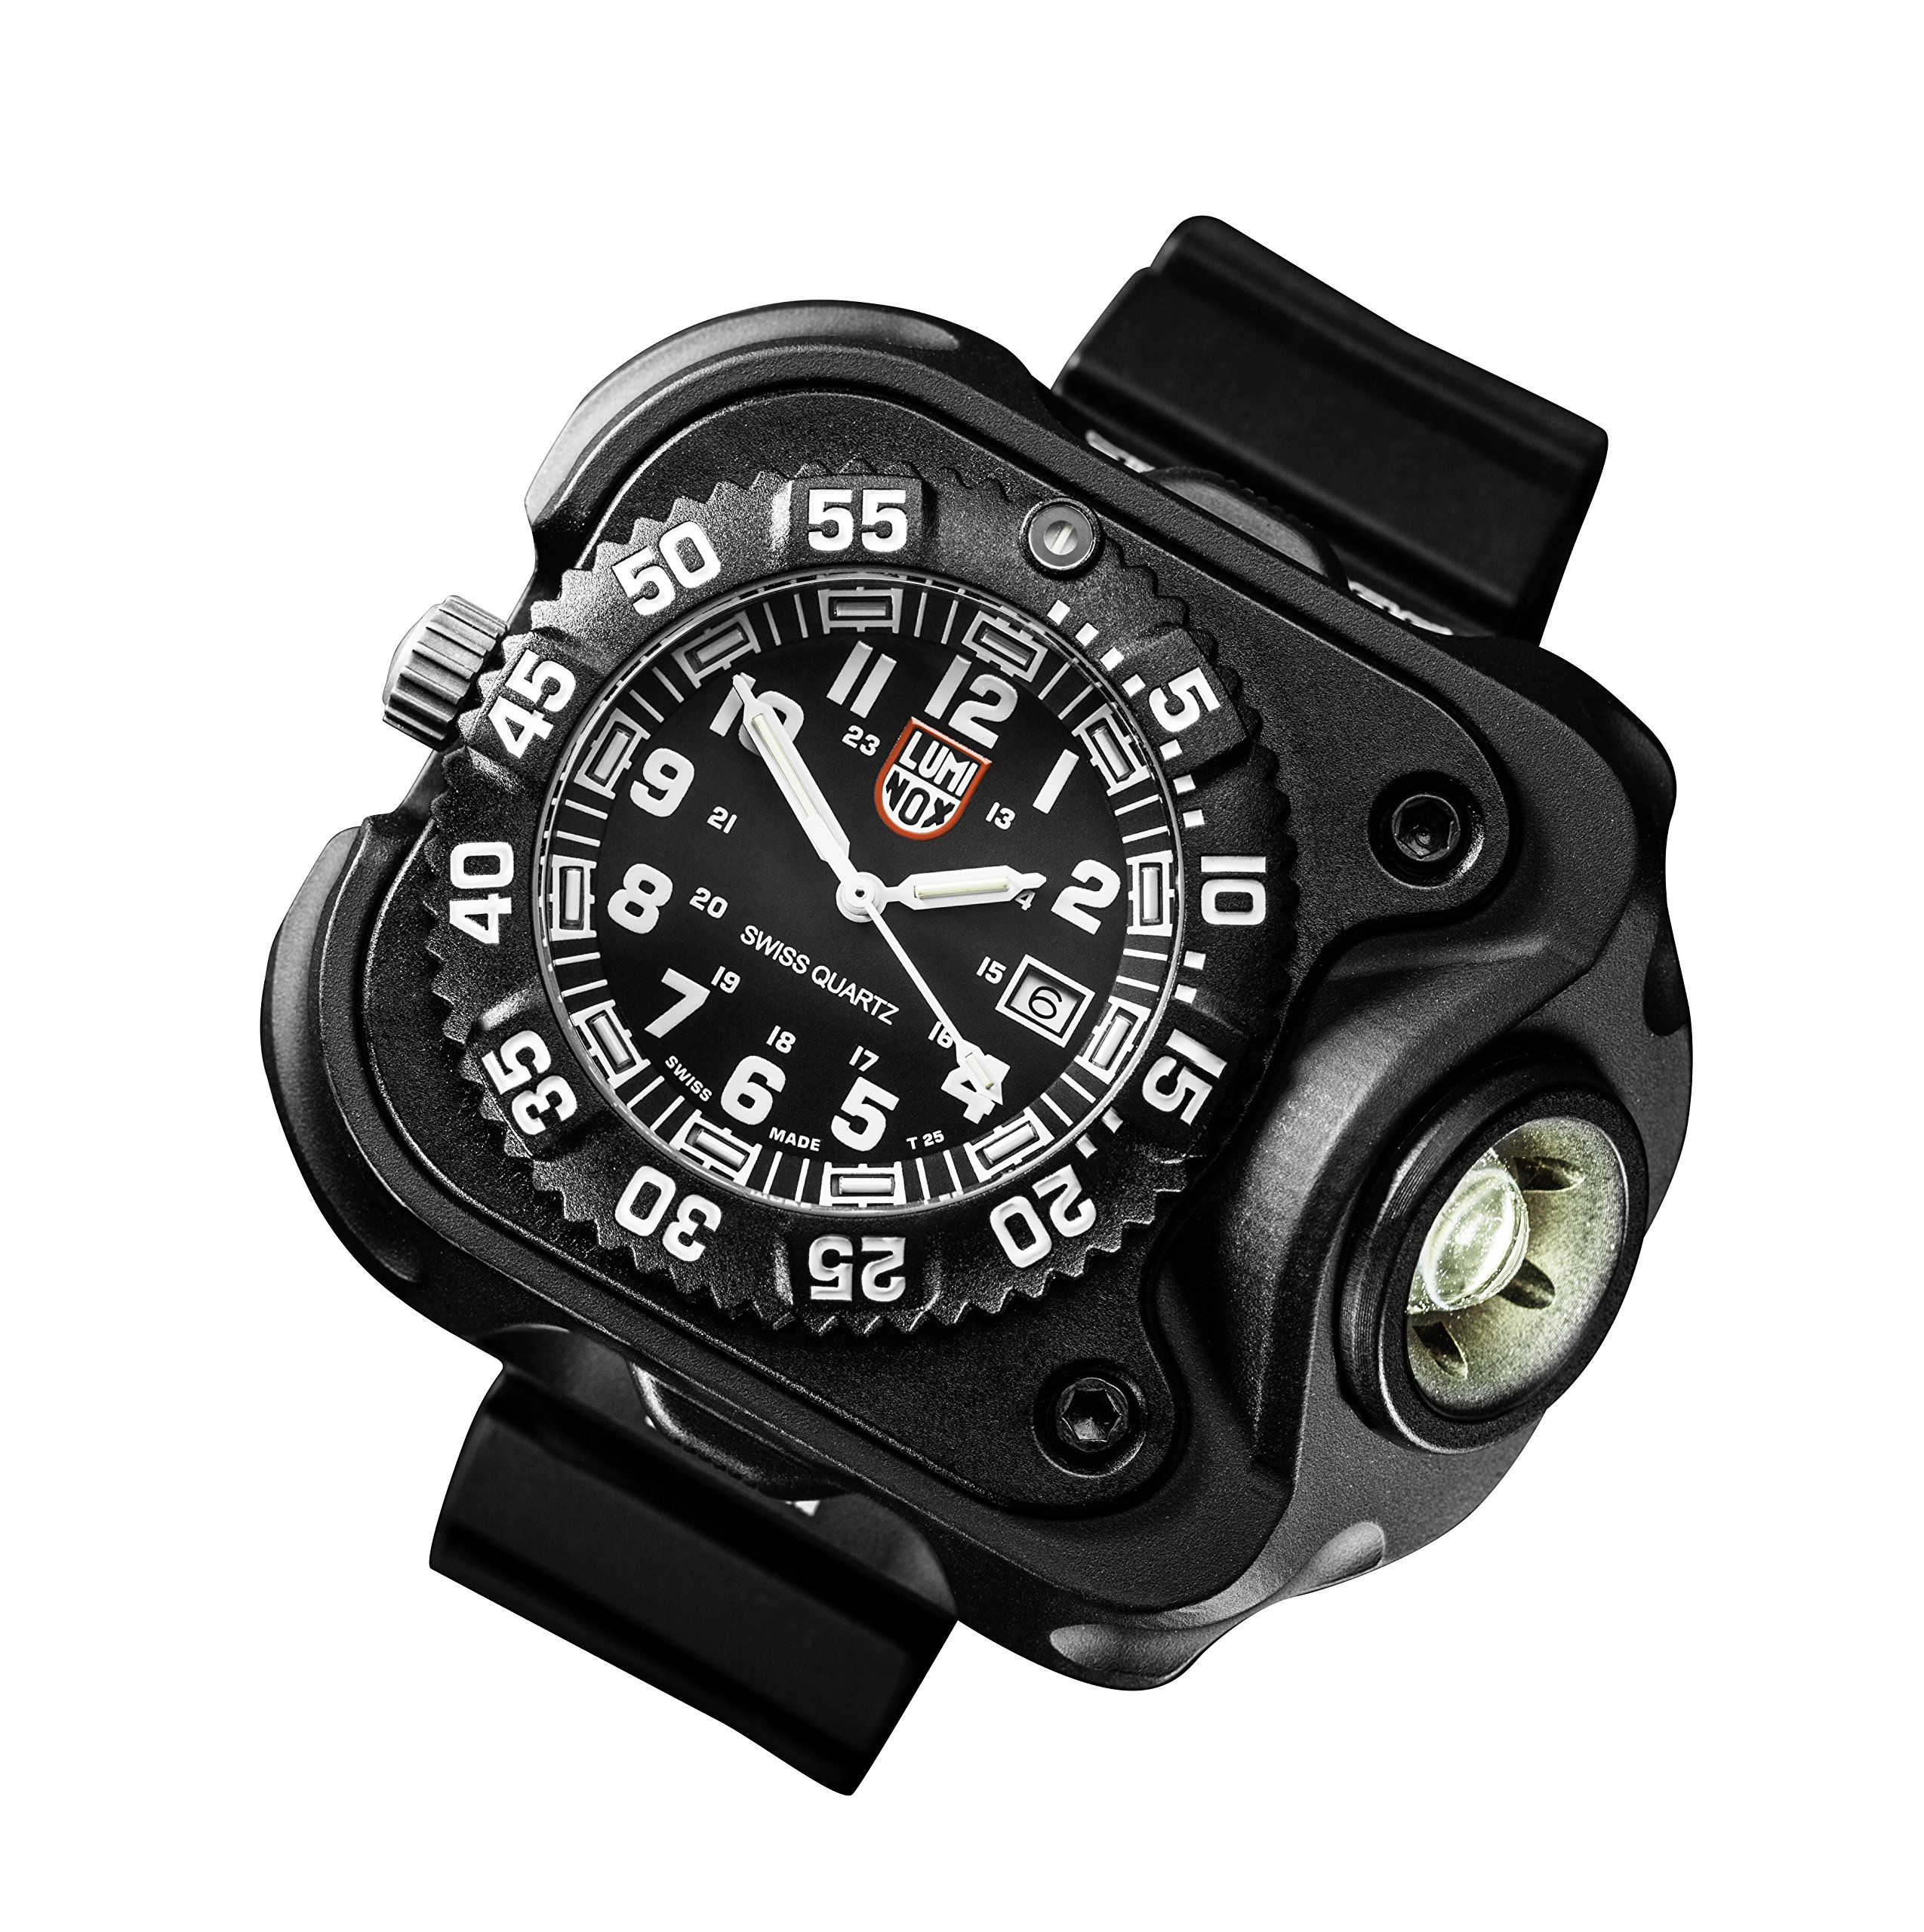 SureFire 2211 Luminox Rechargeable Variable Output LED Wrist Light & Watch by SureFire